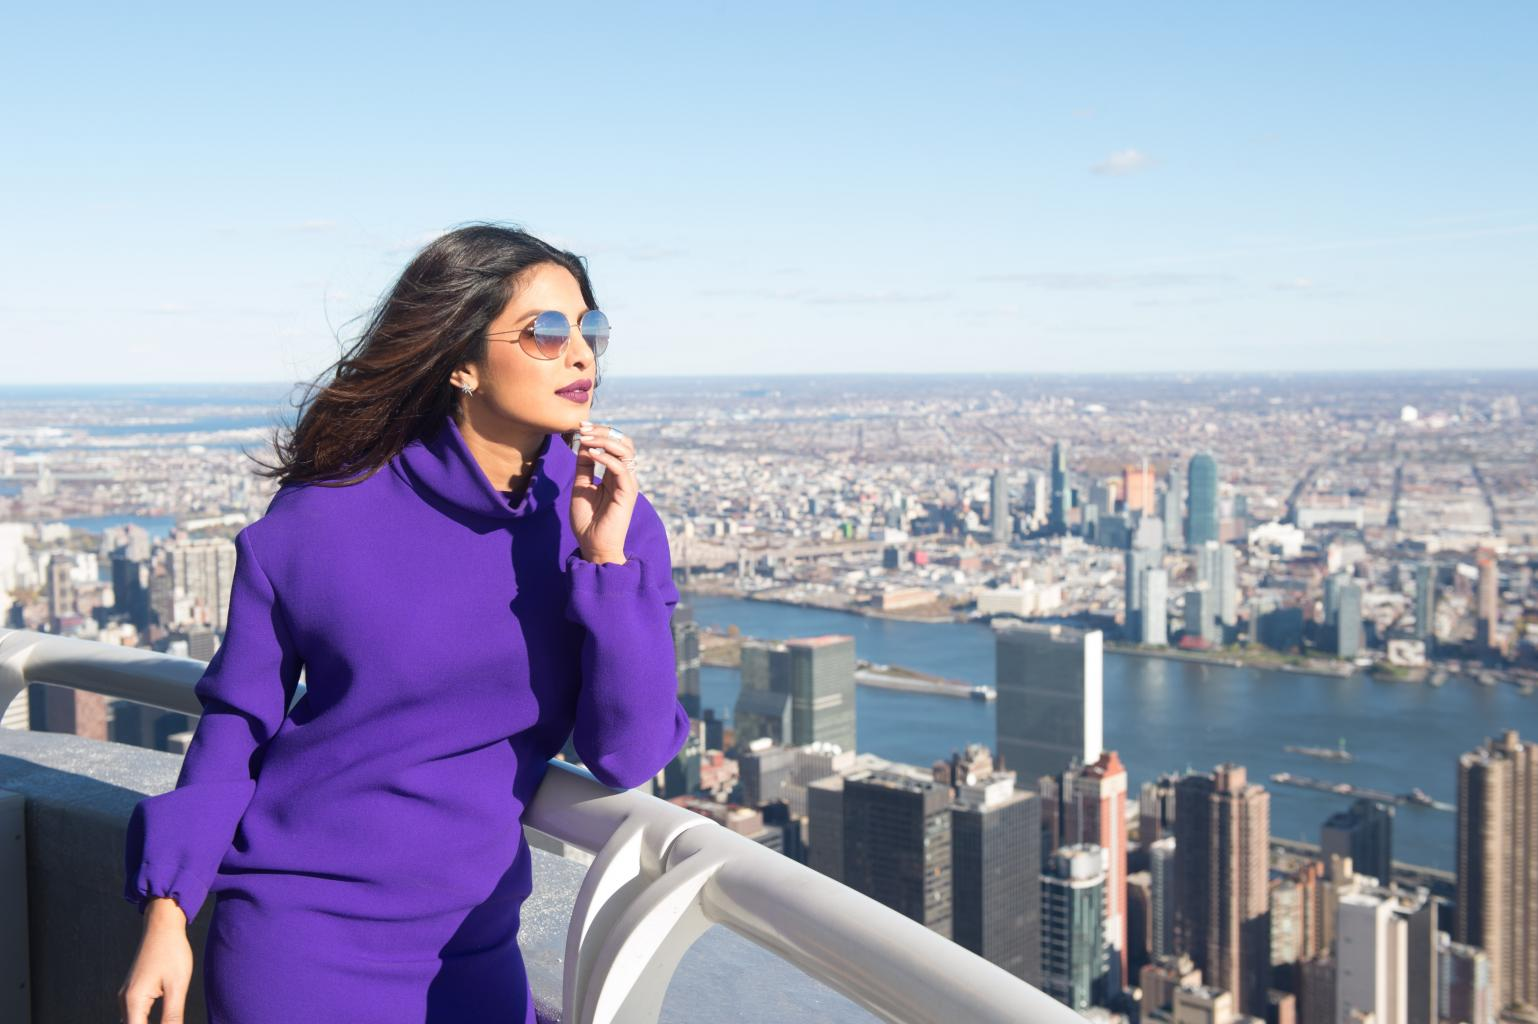 Priyanka Chopra Says 'Being Objectified Is Part of My Job'